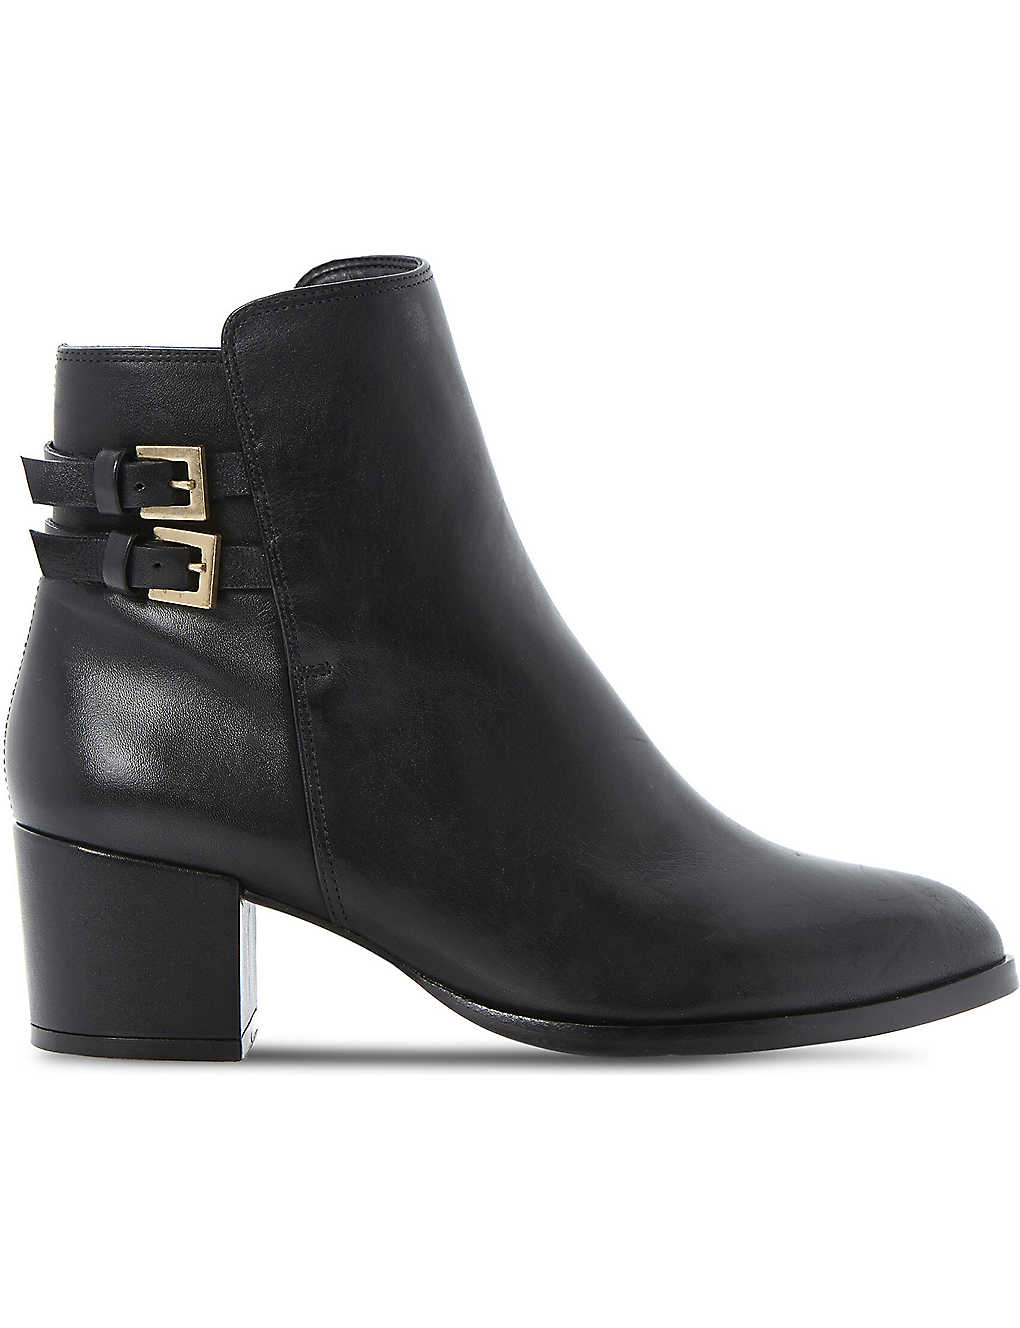 93f583e85908 DUNE Nima block heel ankle boots. Currently unavailable. This product ...